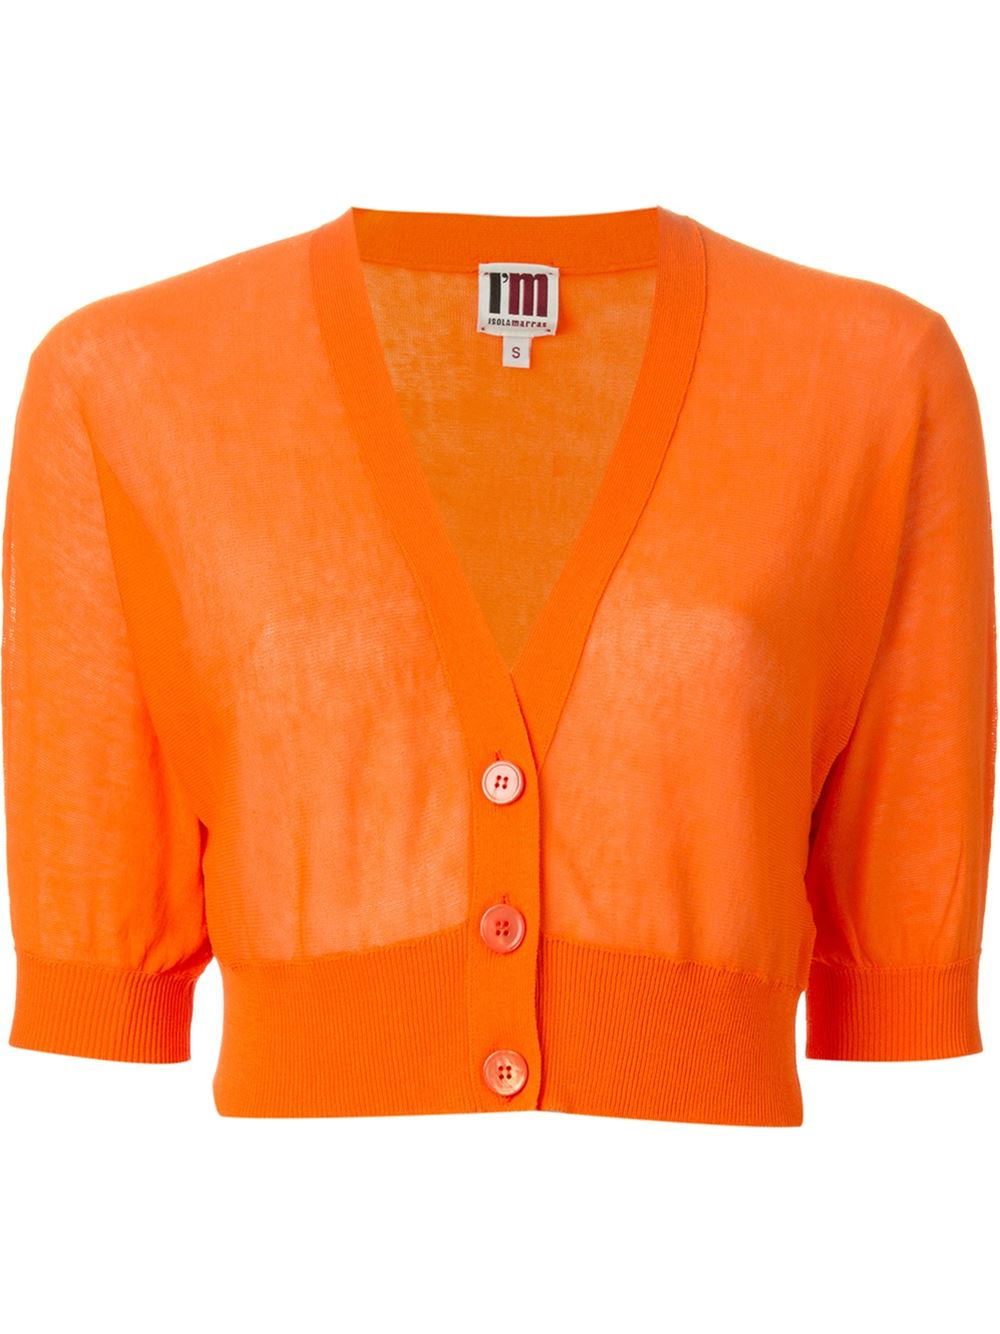 Isola marras Cropped Cardigan in Orange | Lyst